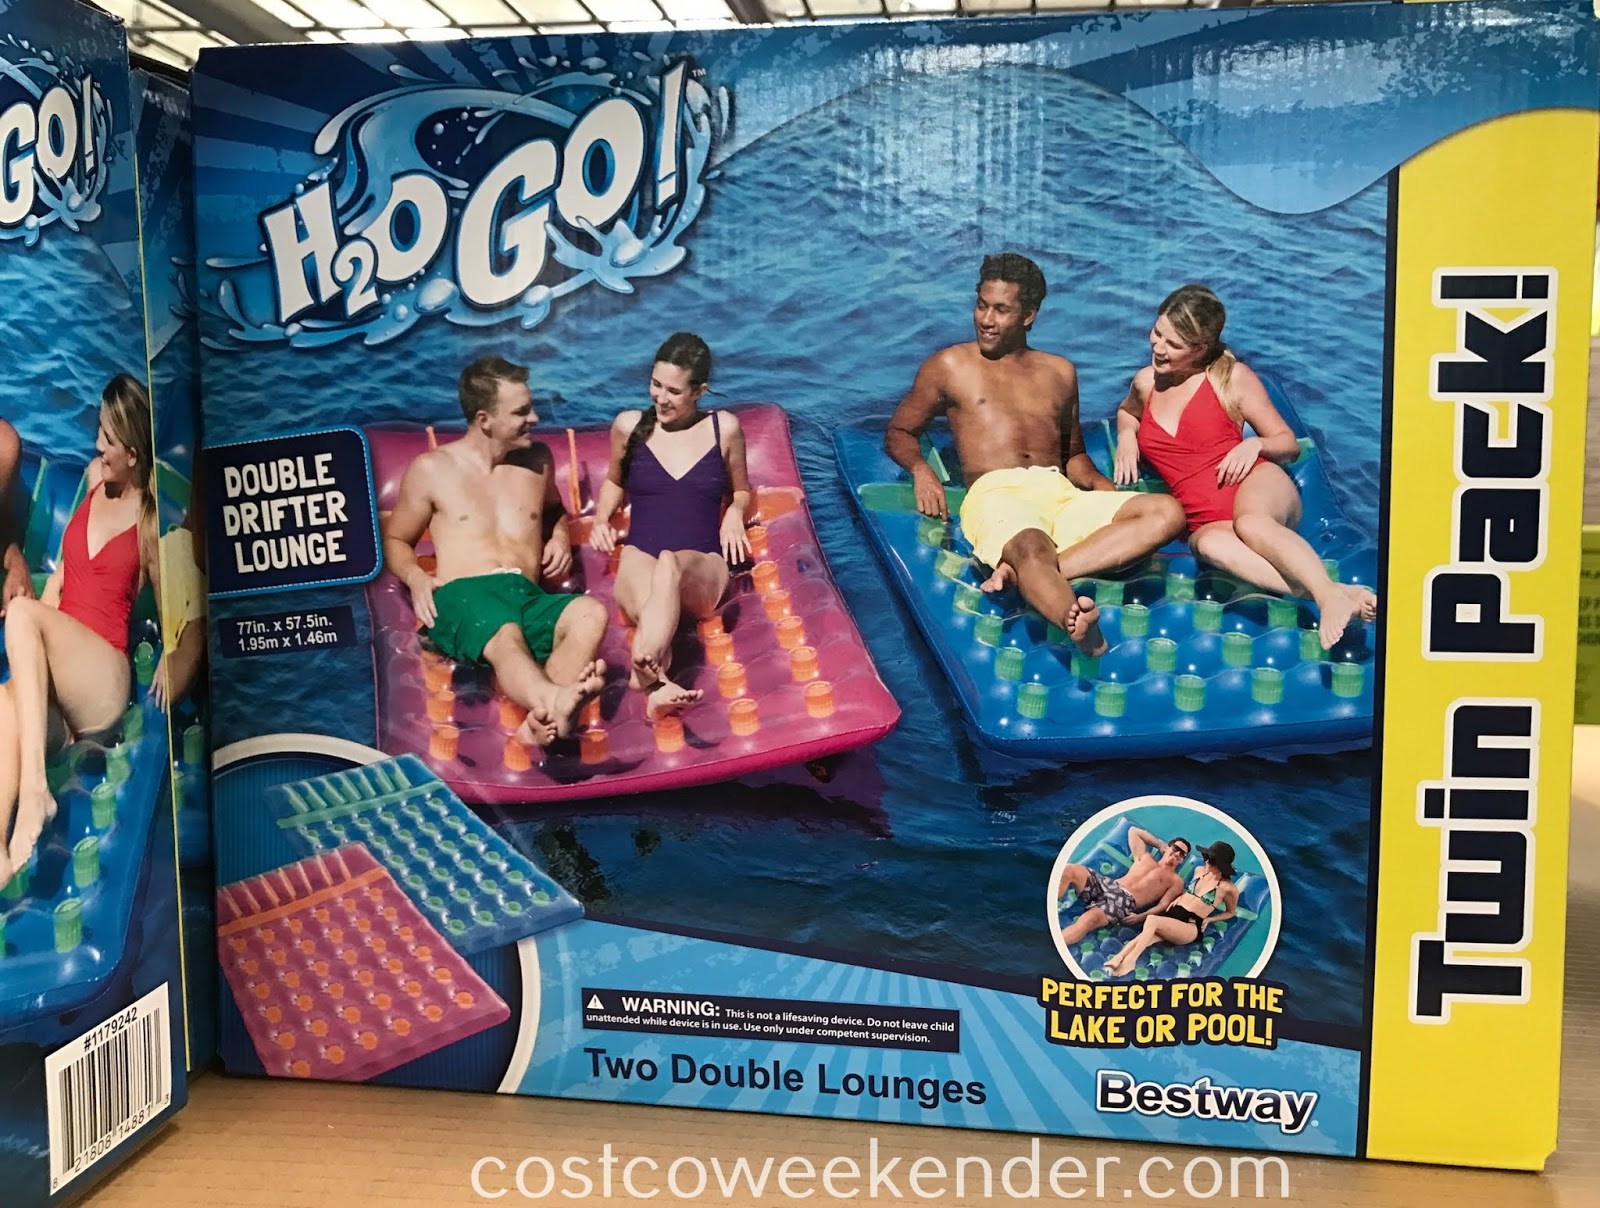 Costco 1179242 - Summer fun won't be complete without the Bestway Double Drifter Lounge Pool Float